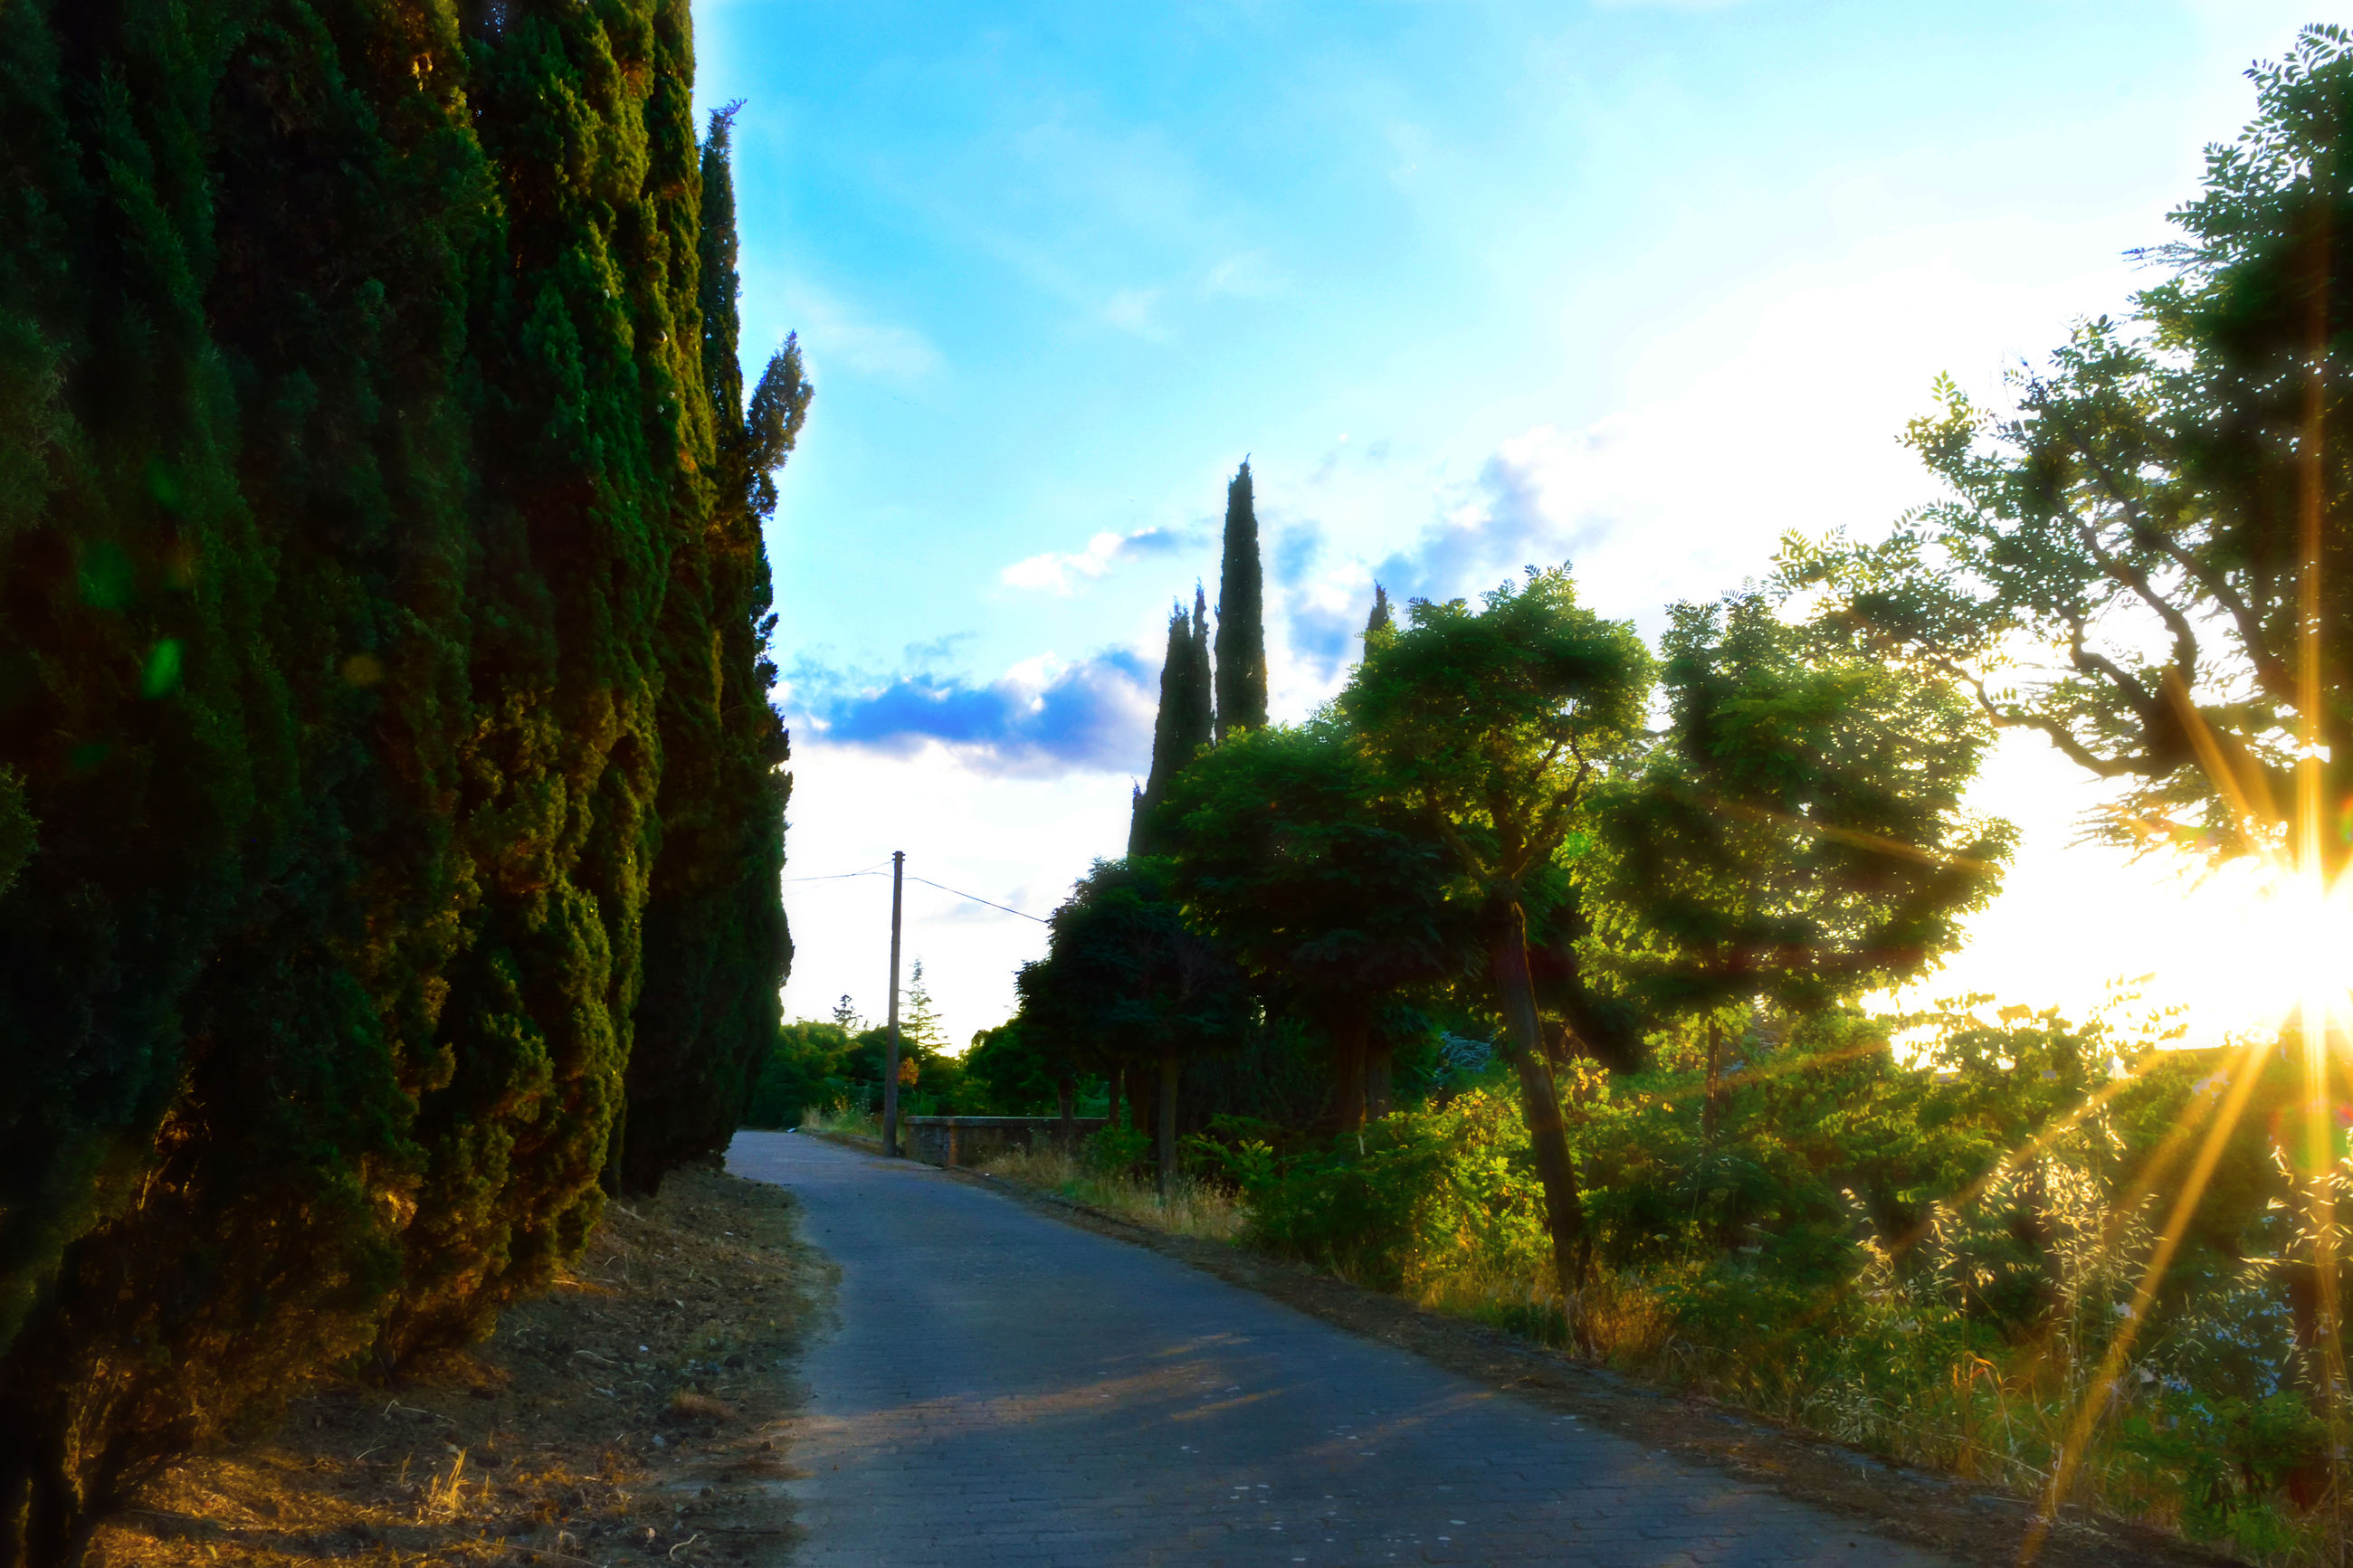 tree, road, the way forward, growth, sky, sunlight, nature, no people, beauty in nature, day, outdoors, scenics